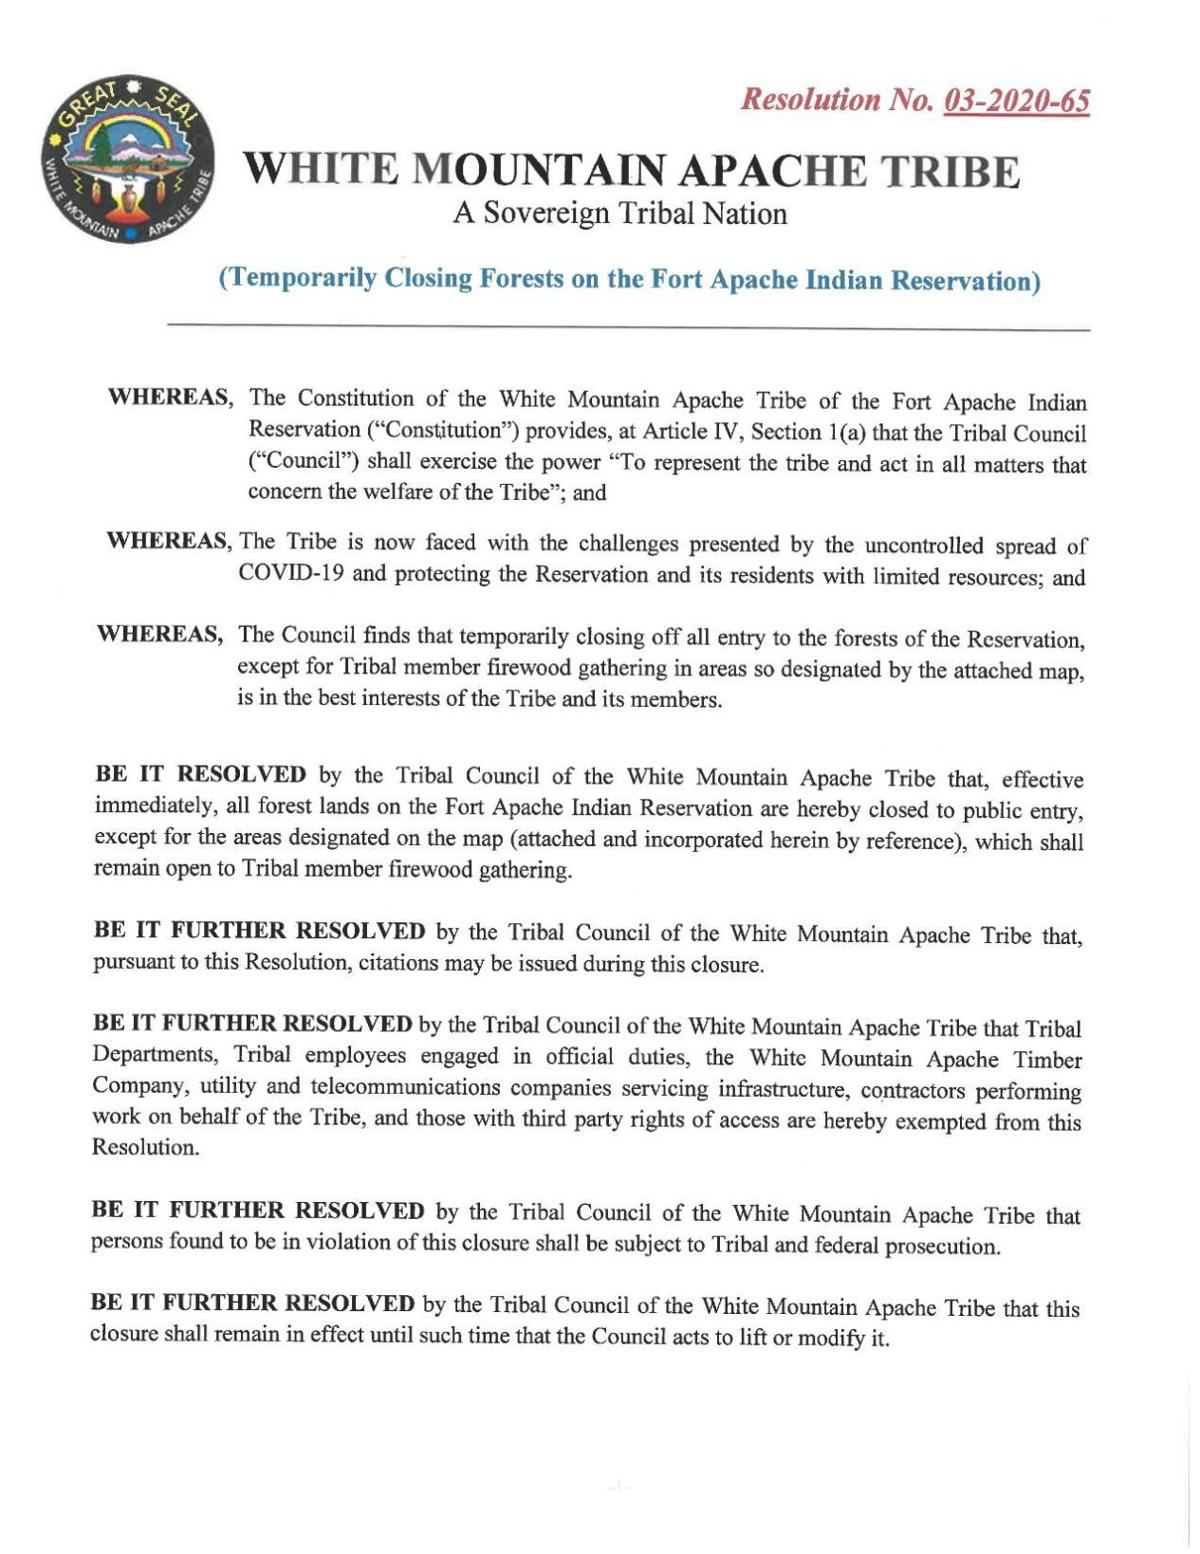 WMAT Proclamation closing tribal forest lands